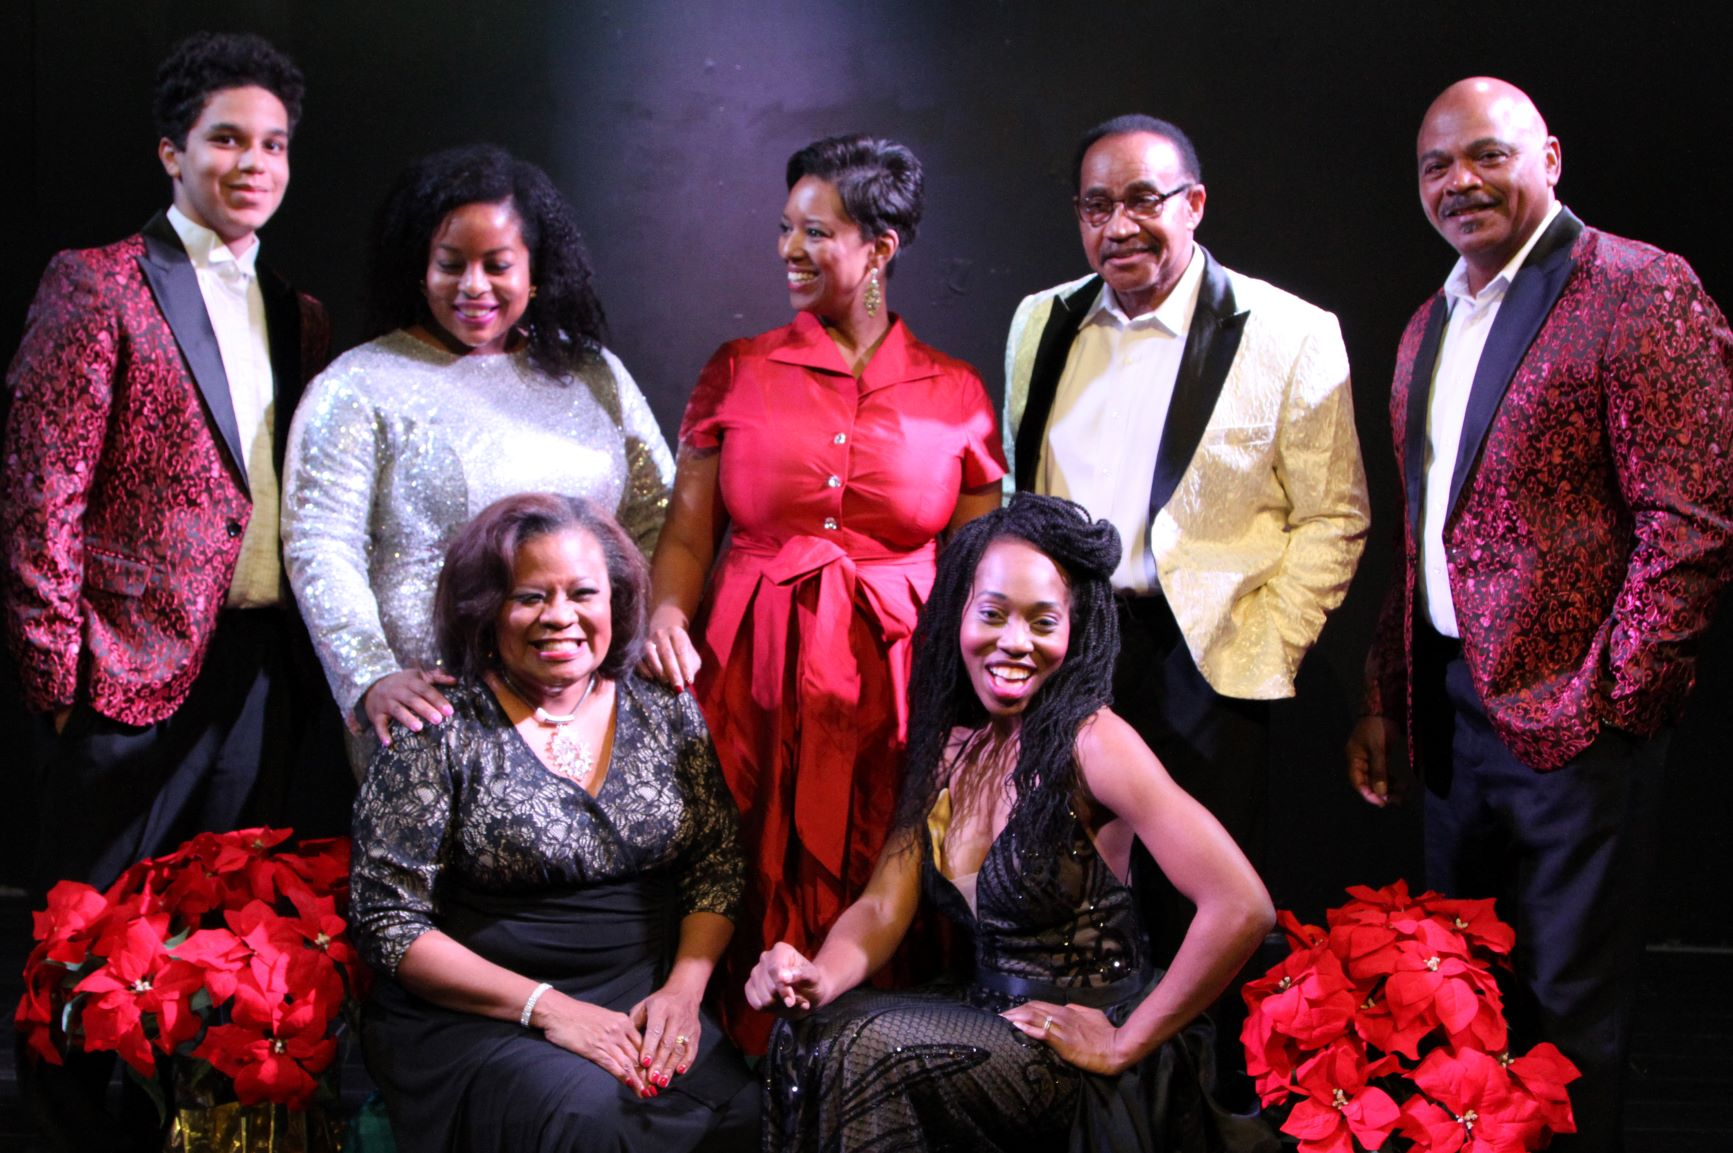 Group shot of Motown Christmas singers